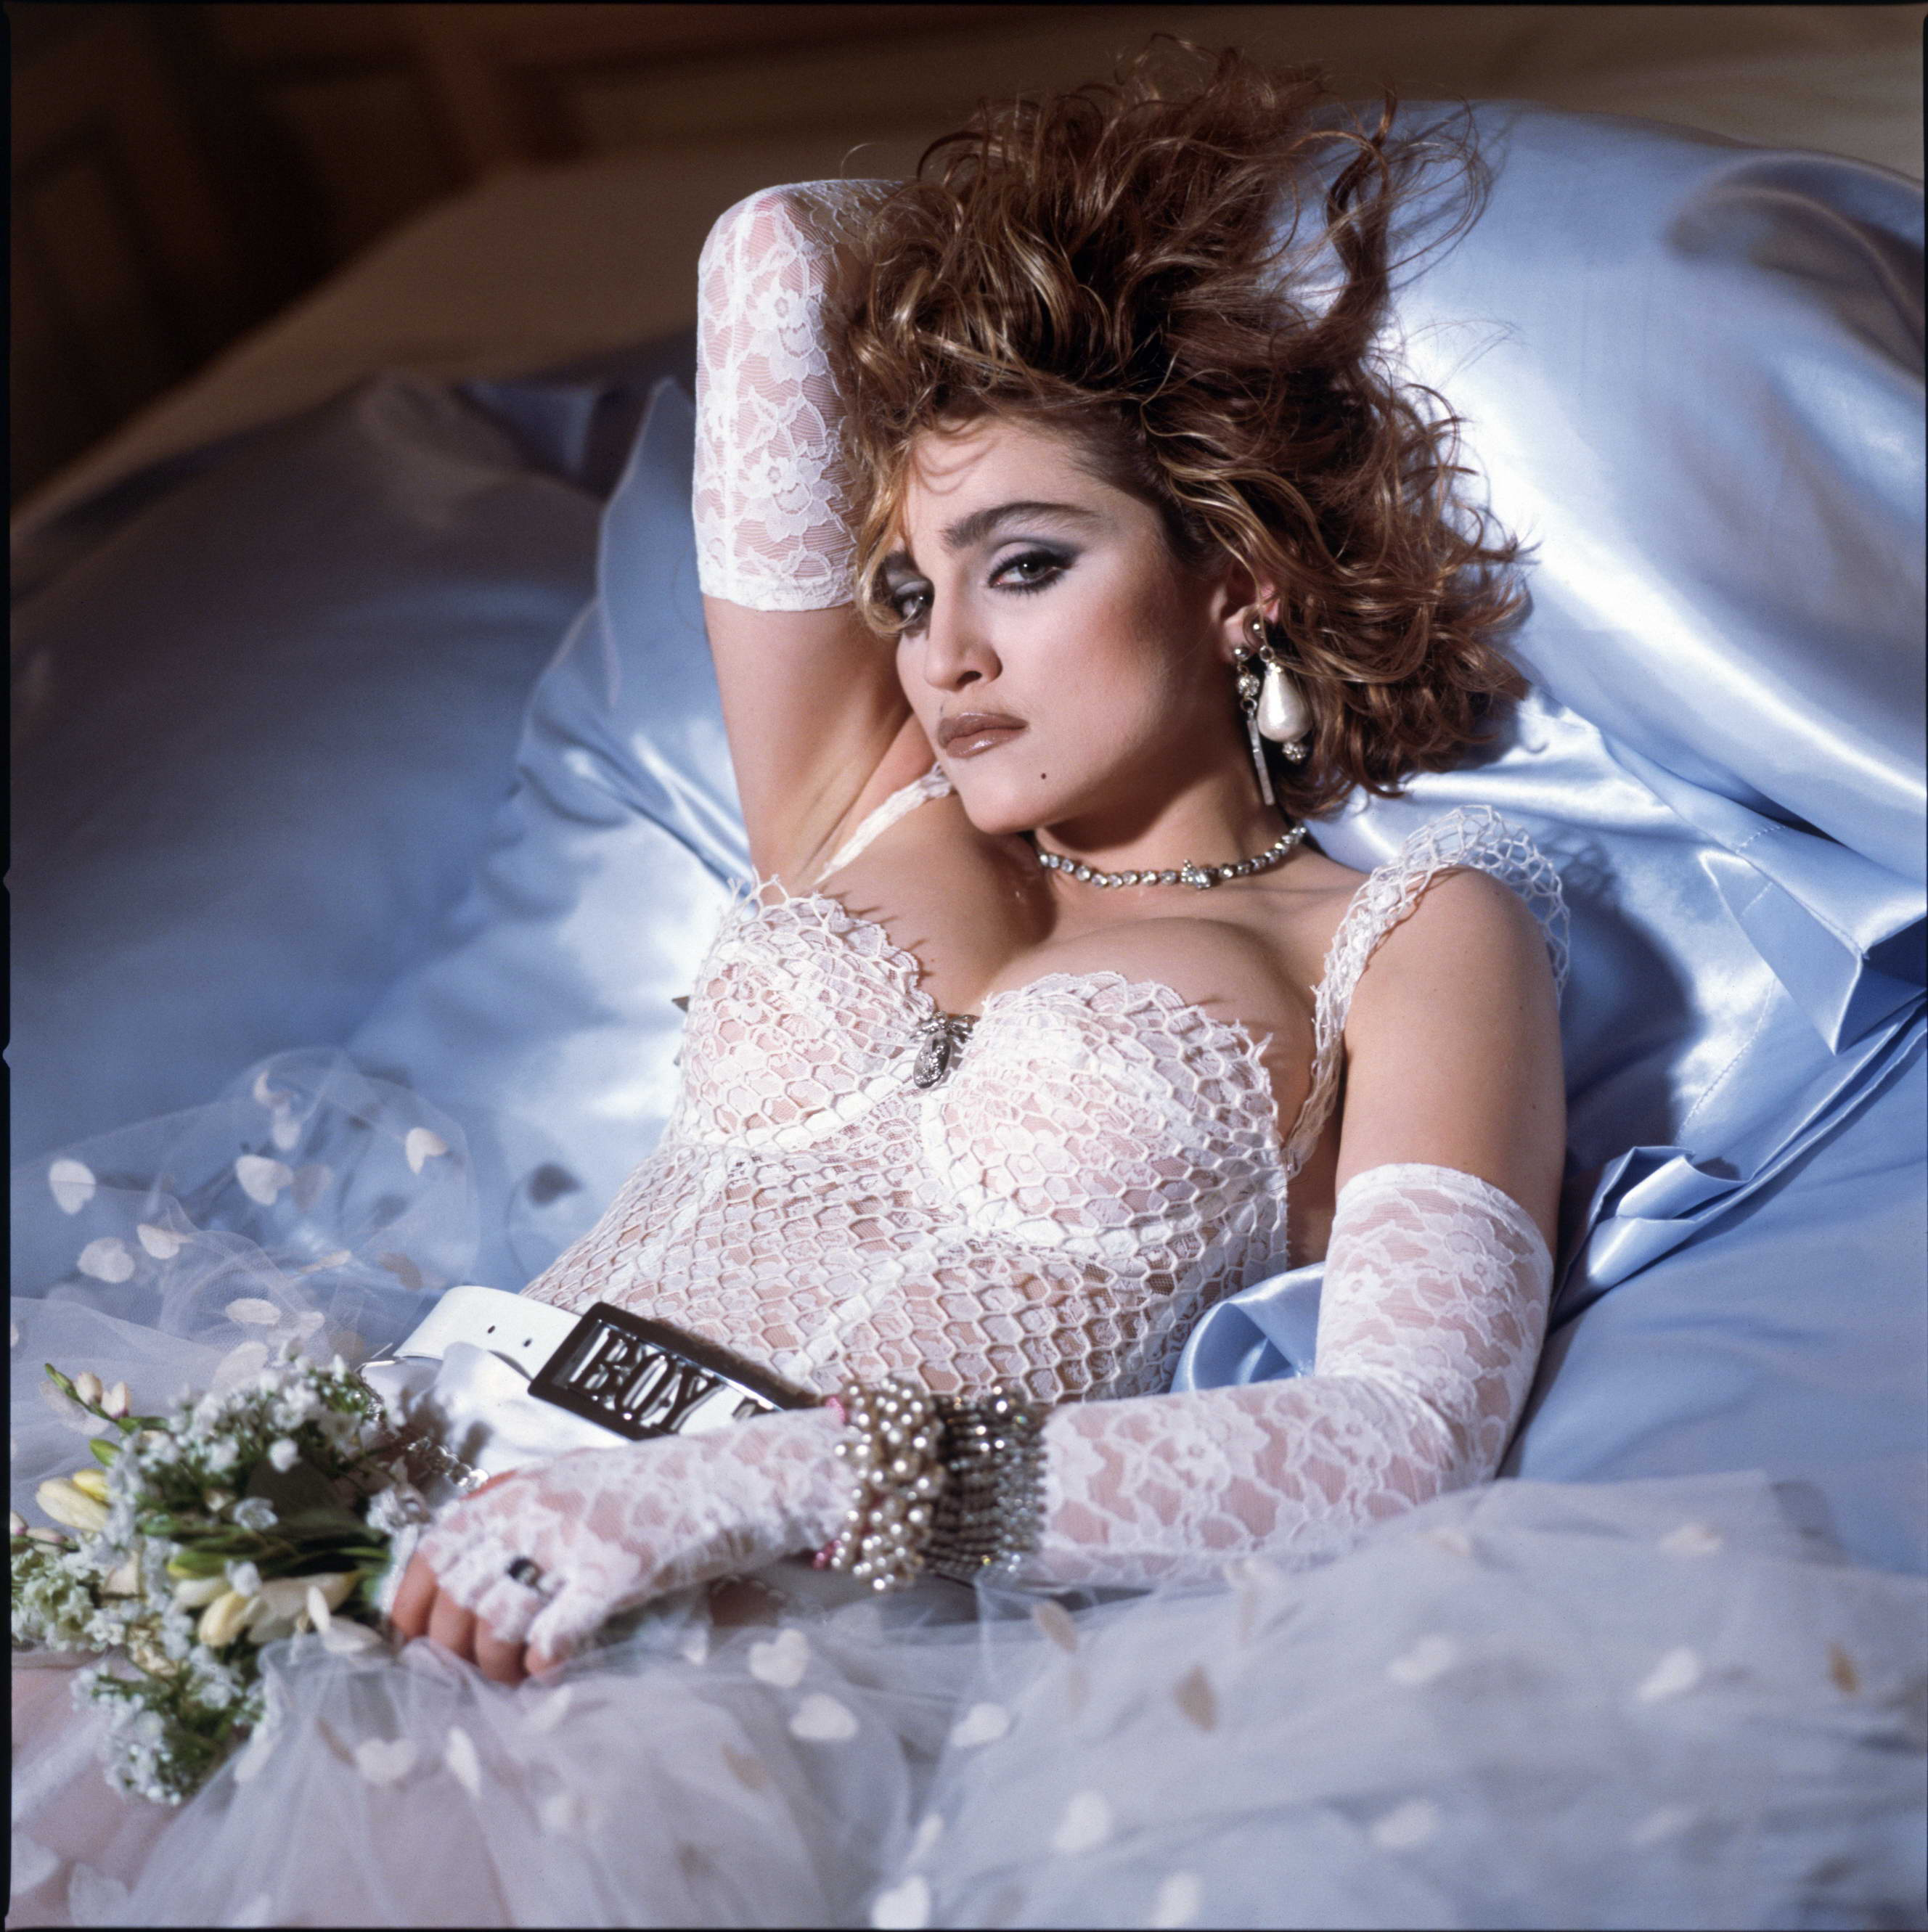 Madonna like a virgin album cover session by meisel 1984 01 jpg